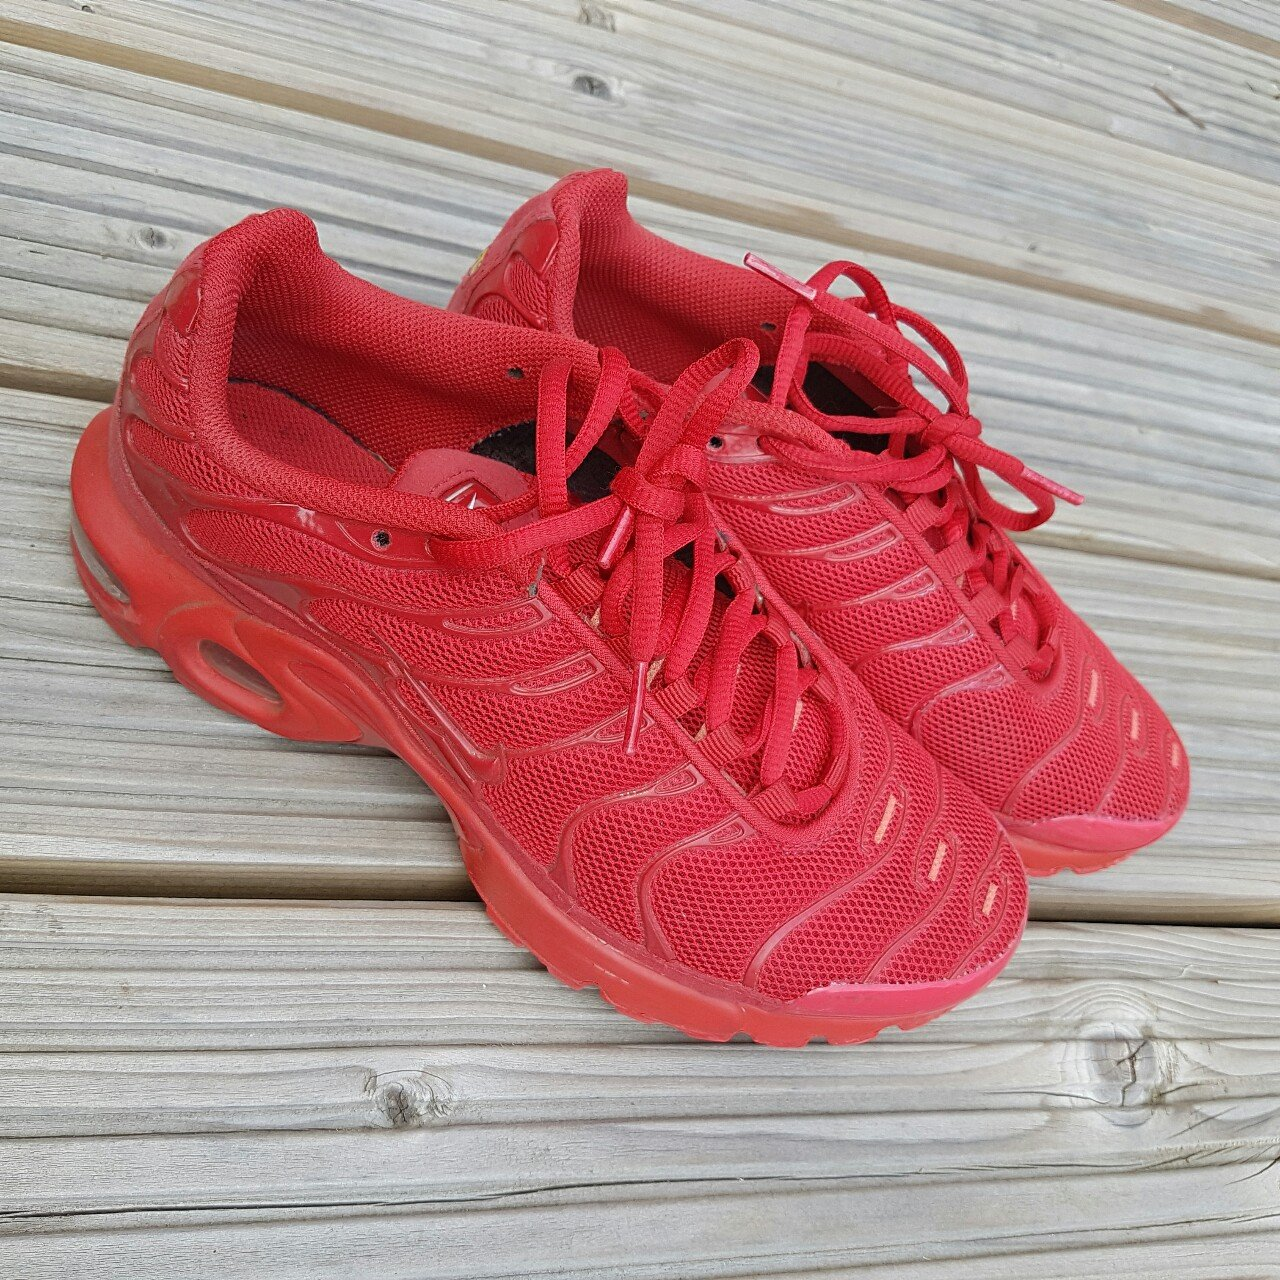 sports shoes 8a761 25fe8 Nike Tuned 1s BACK IN STOCK Red SOLD OUT Nike TN 1 Used, - Depop